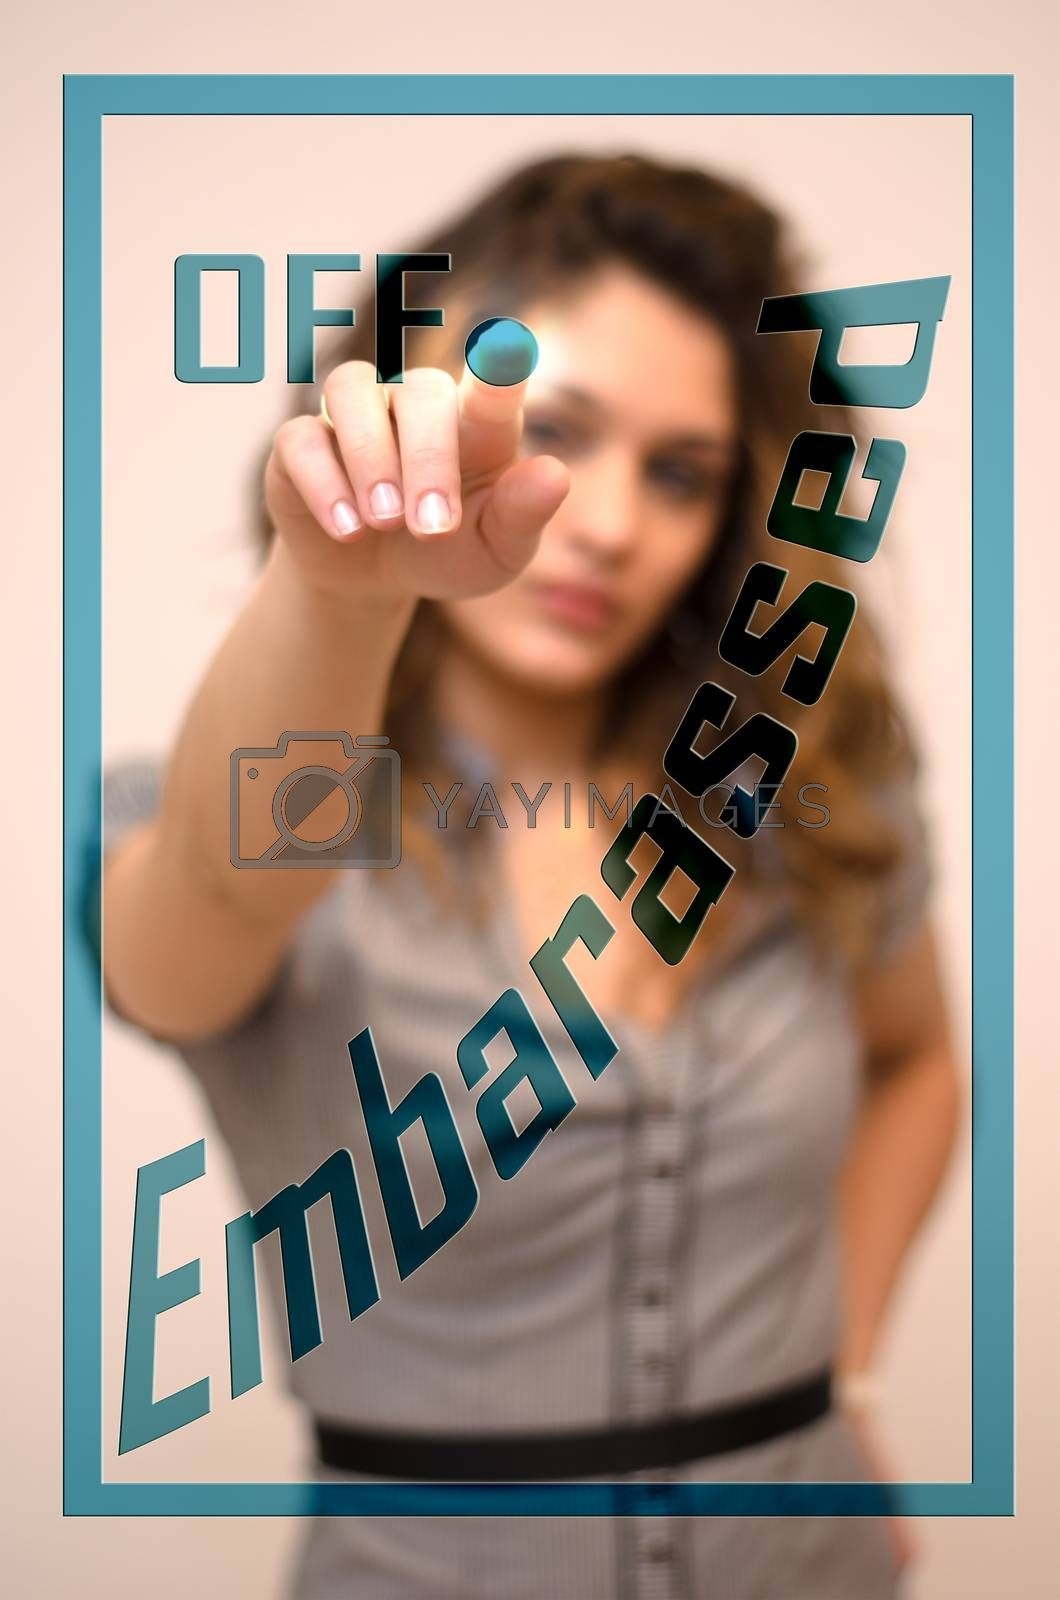 young woman turning offEmbarassed on hologram screen